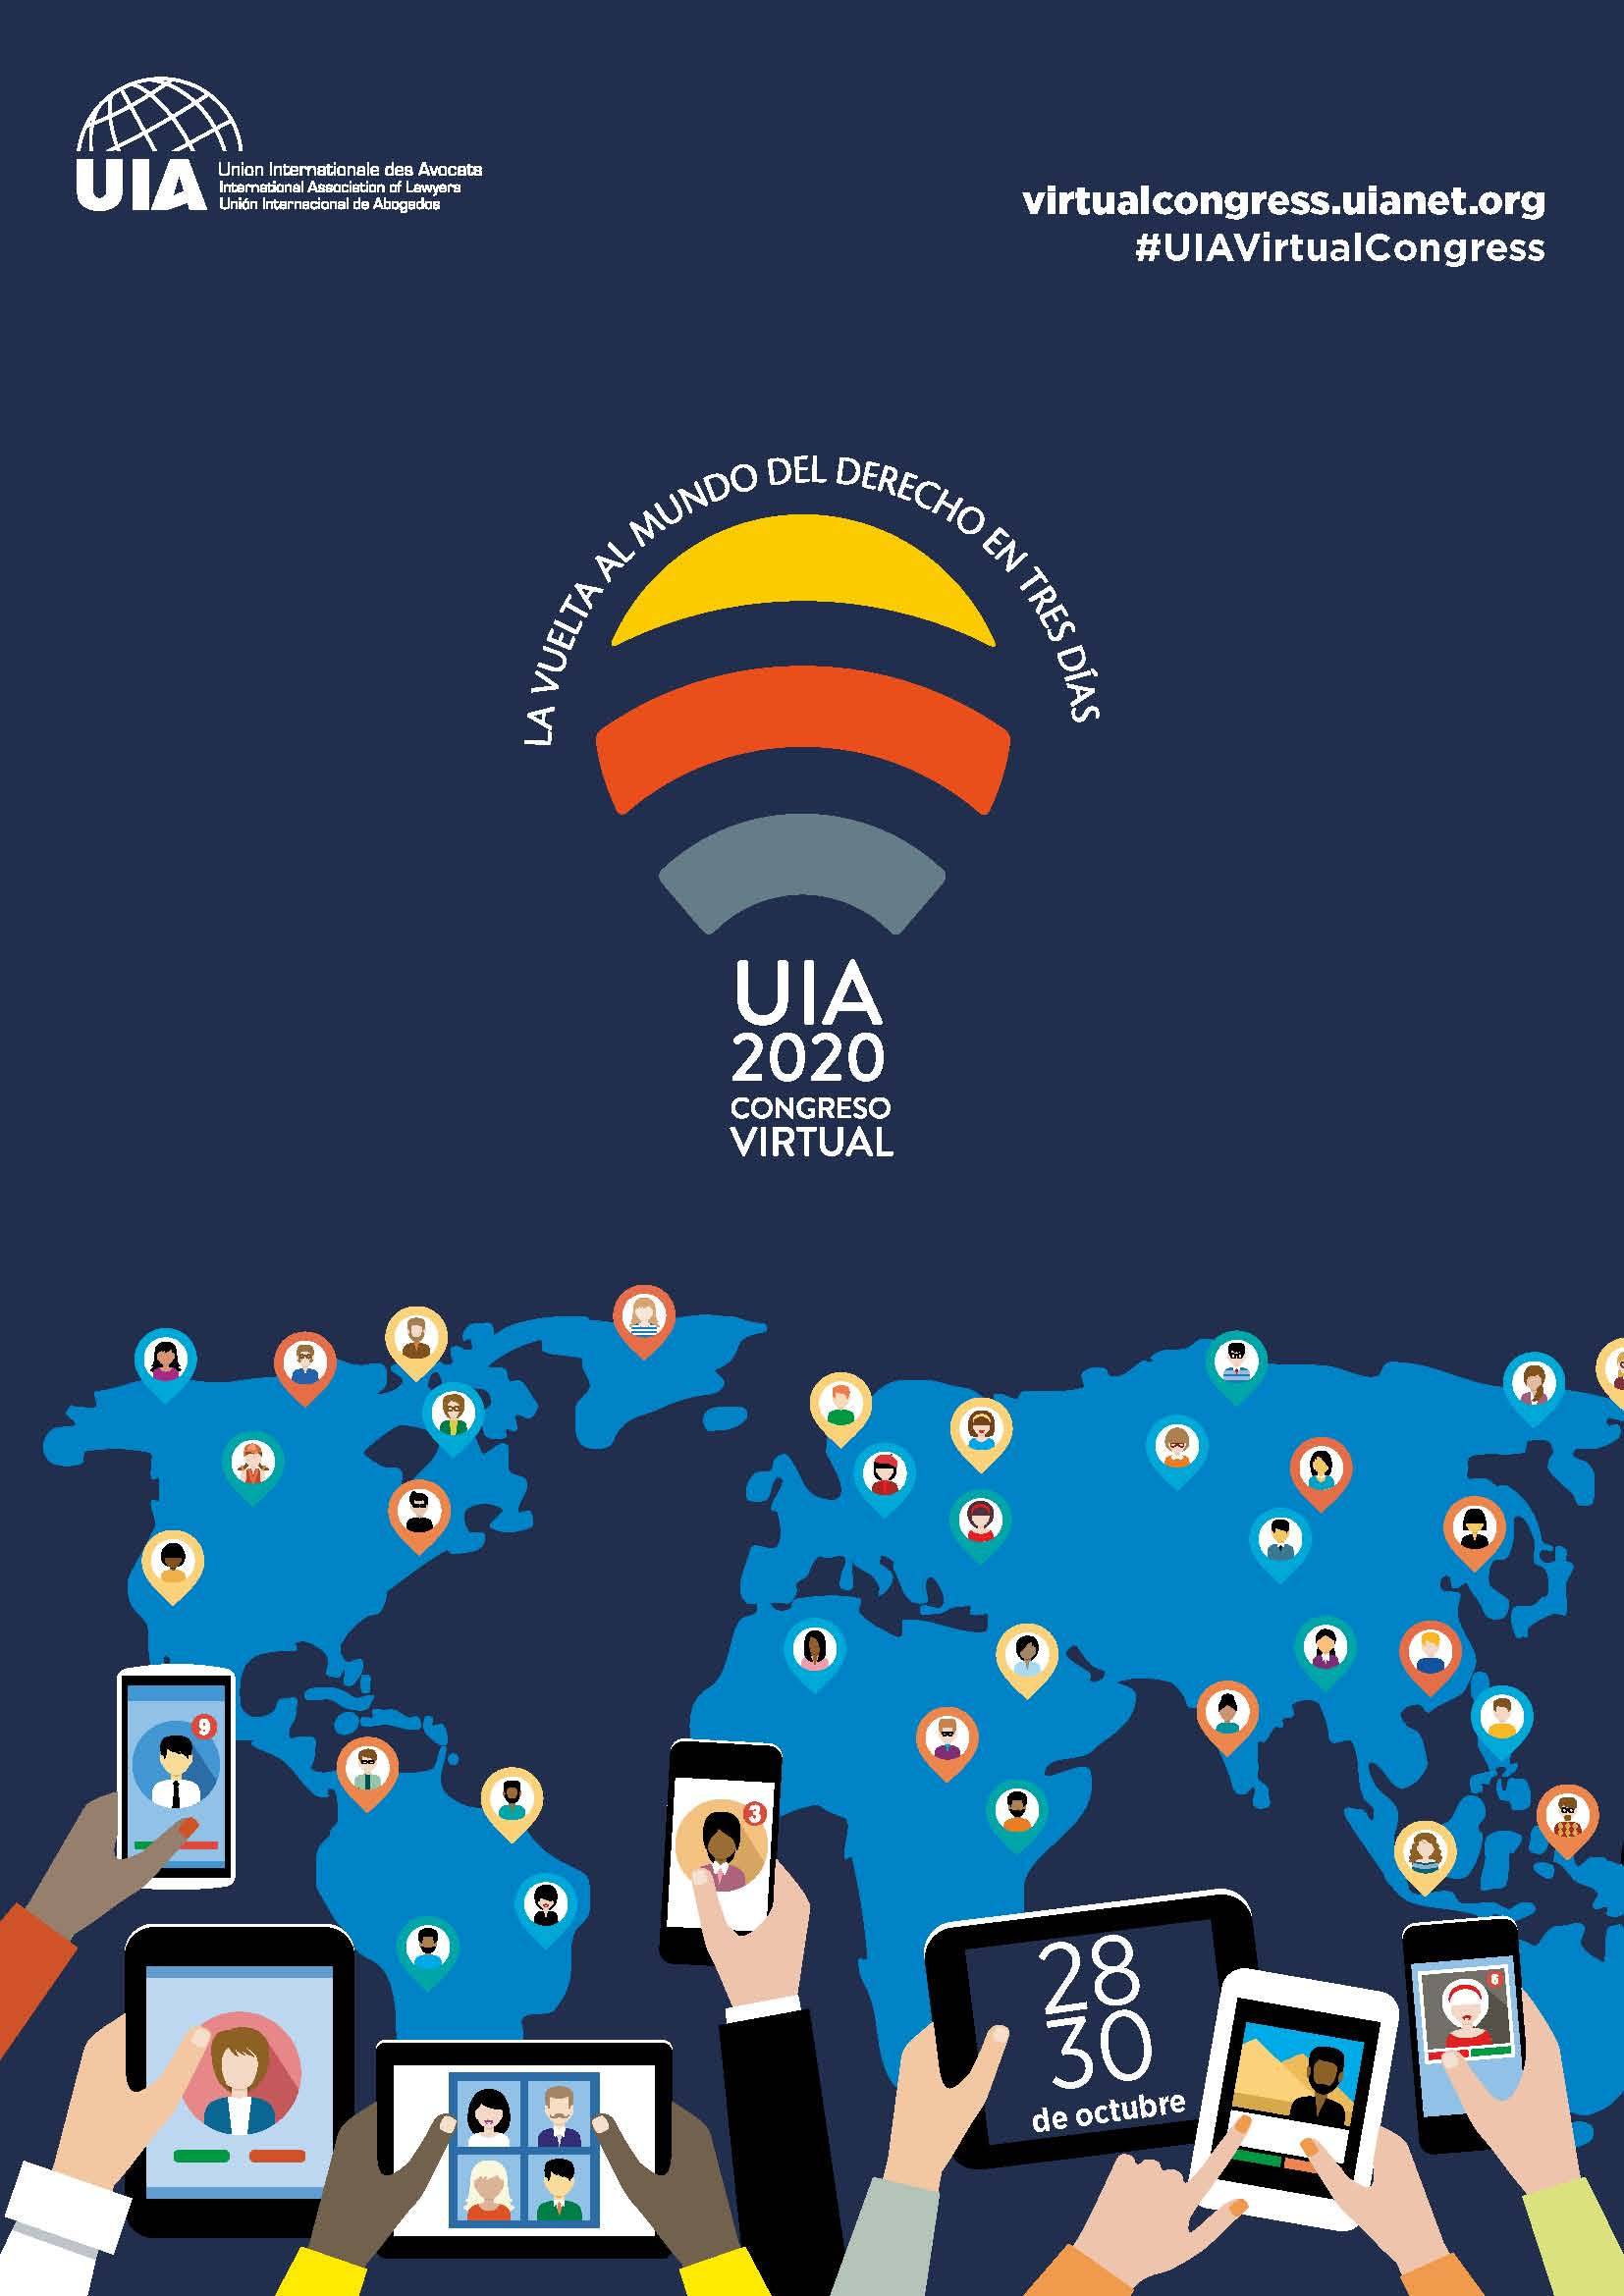 UIA 2020 Virtual Congress